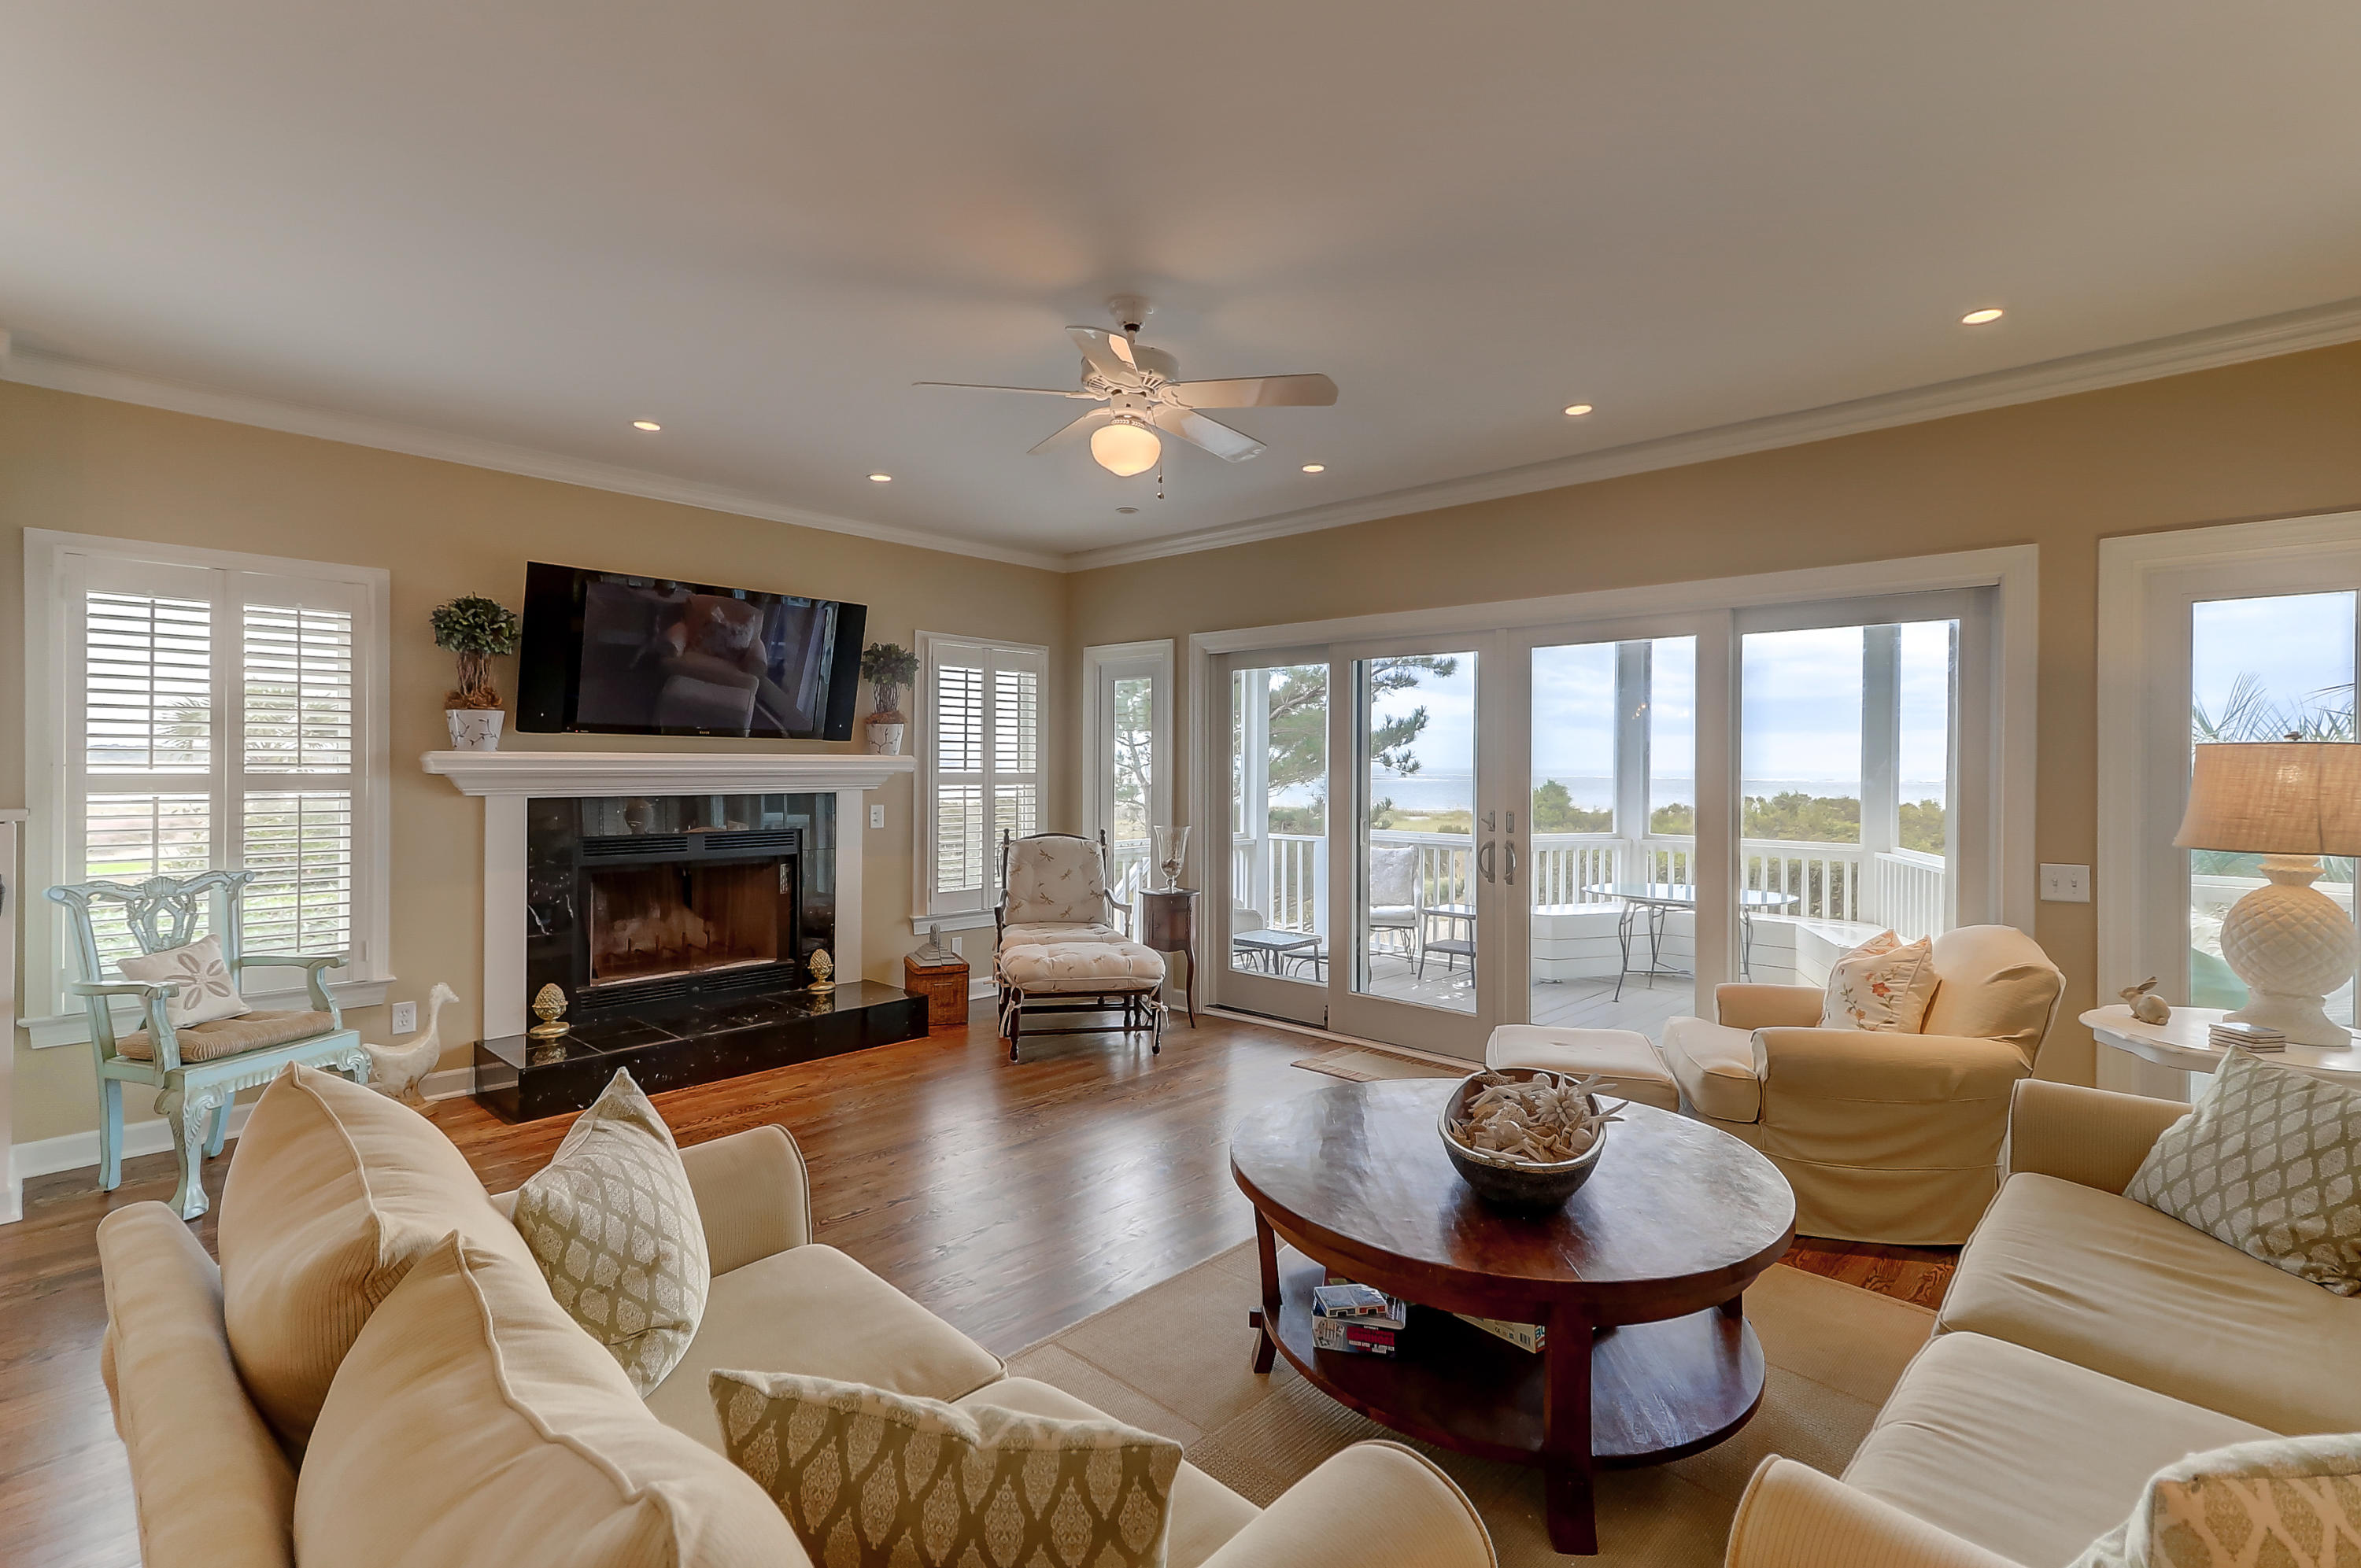 Wild Dunes Homes For Sale - 47 Ocean Point, Isle of Palms, SC - 11